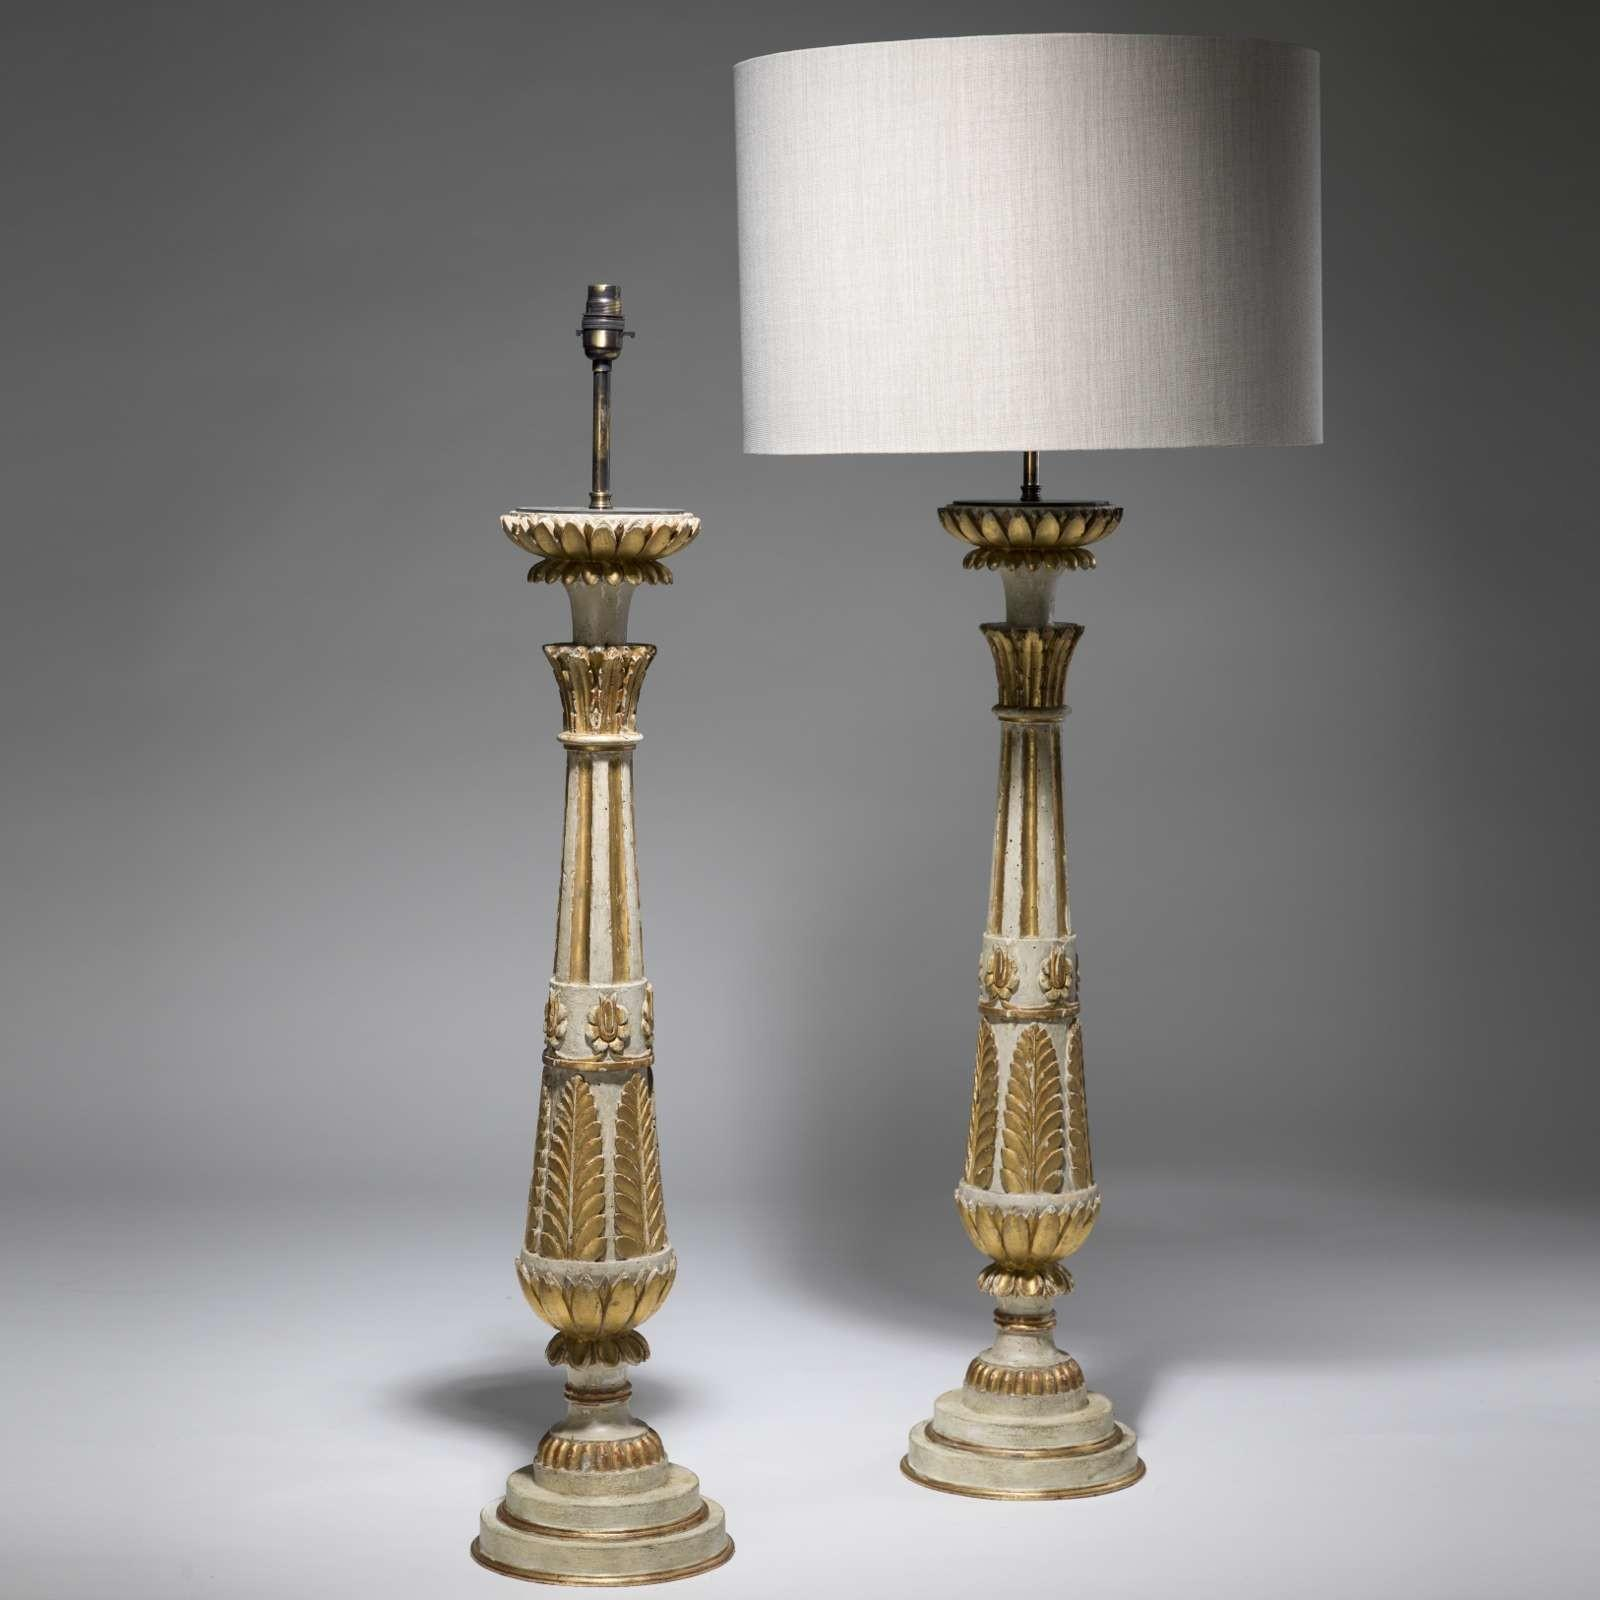 Pair C1820 Large Antique French Wooden Table Lamps